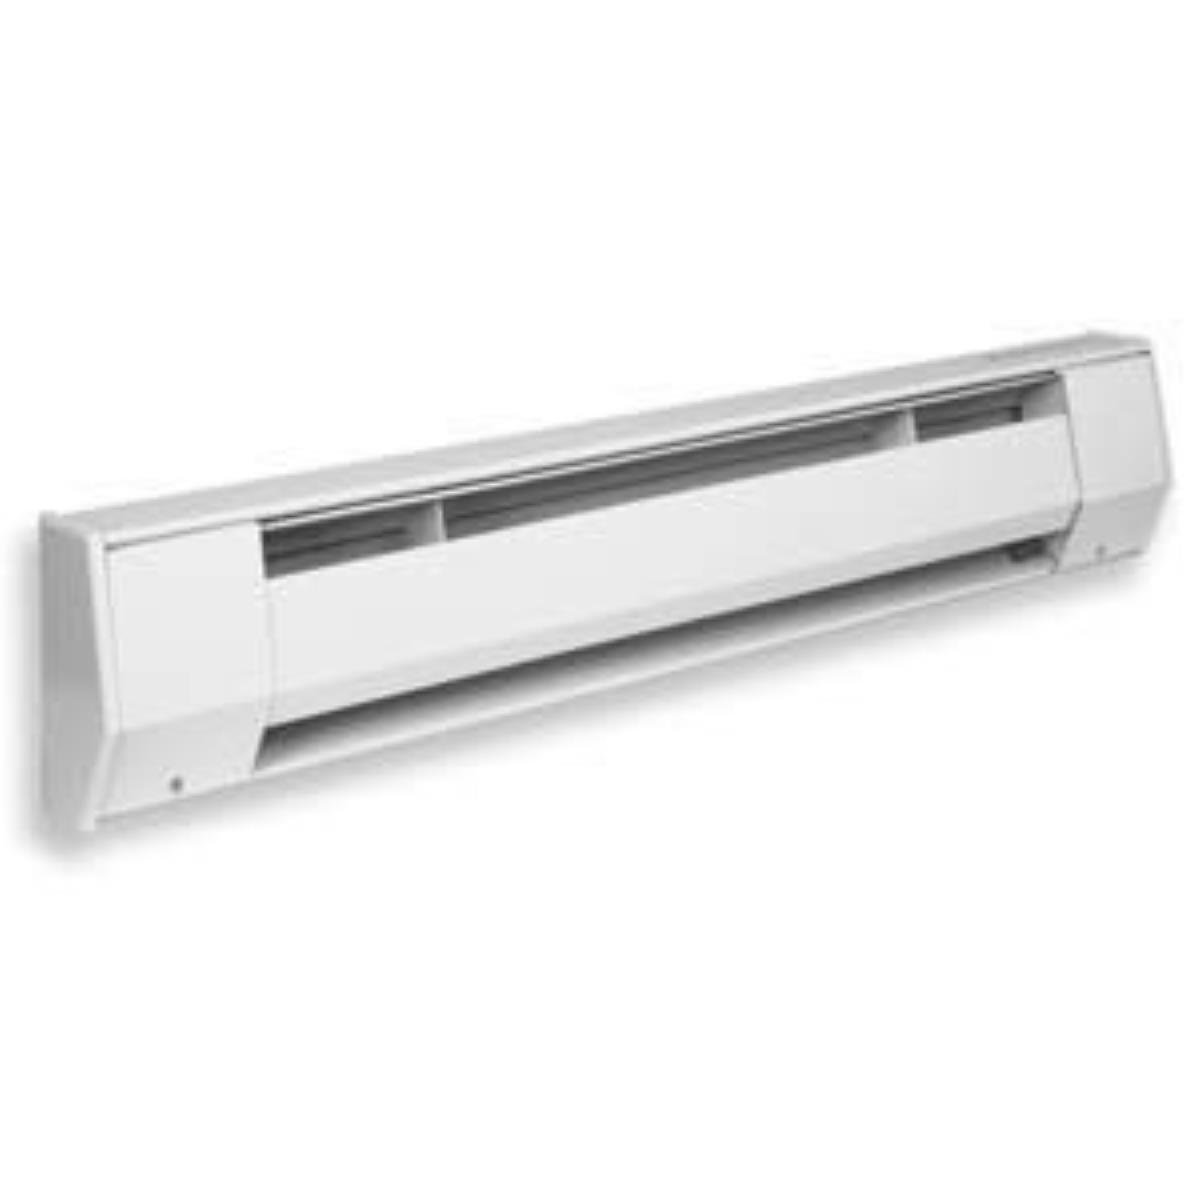 King 2K2405BW 500-375-Watt 240/208-Volt 27-Inches Baseboard Heater, Bright White